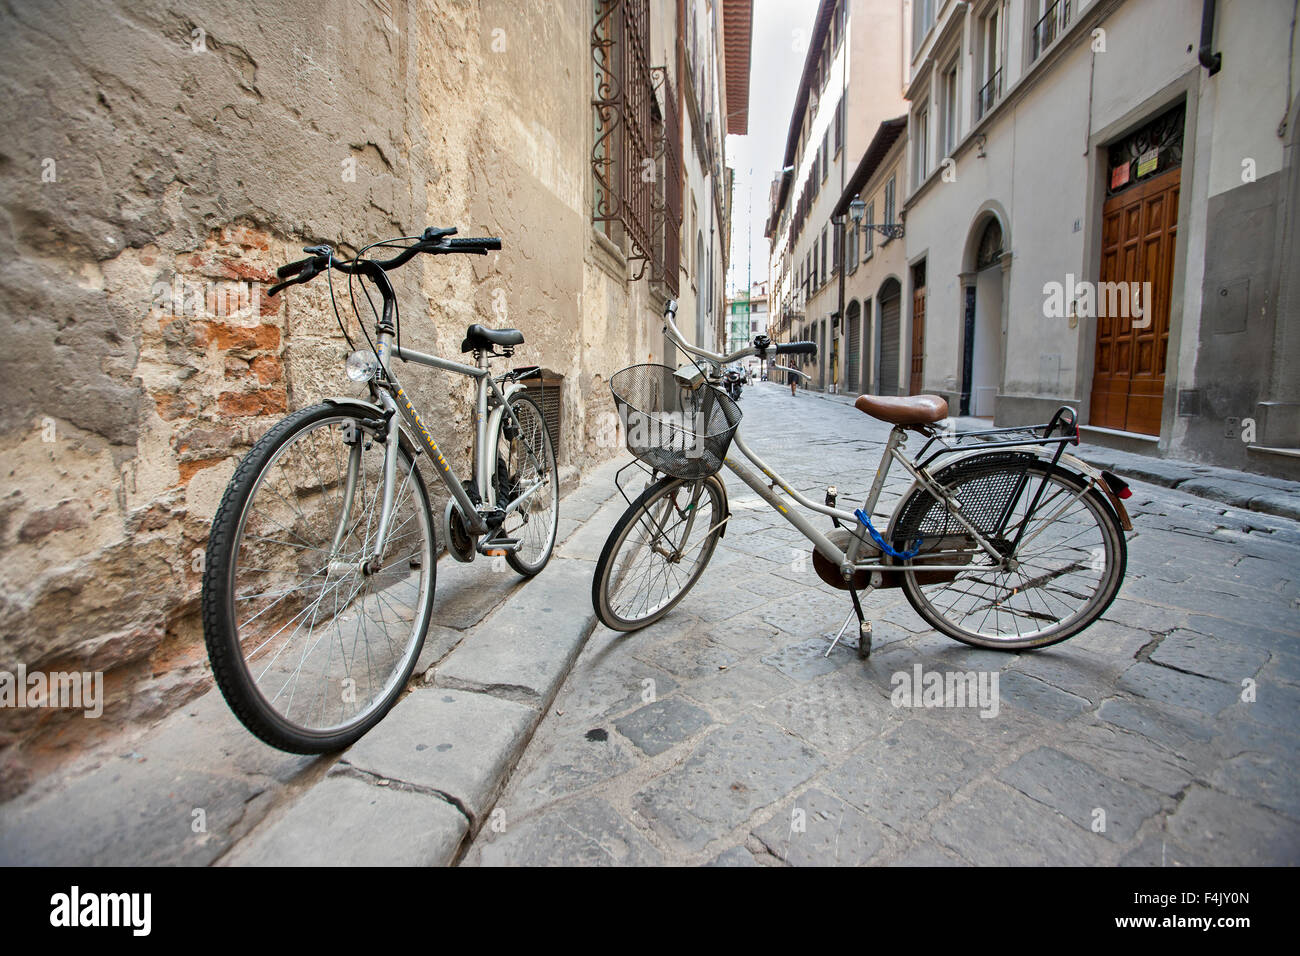 two Bicycles parked on stands in empty street, Florence Italy, - Stock Image